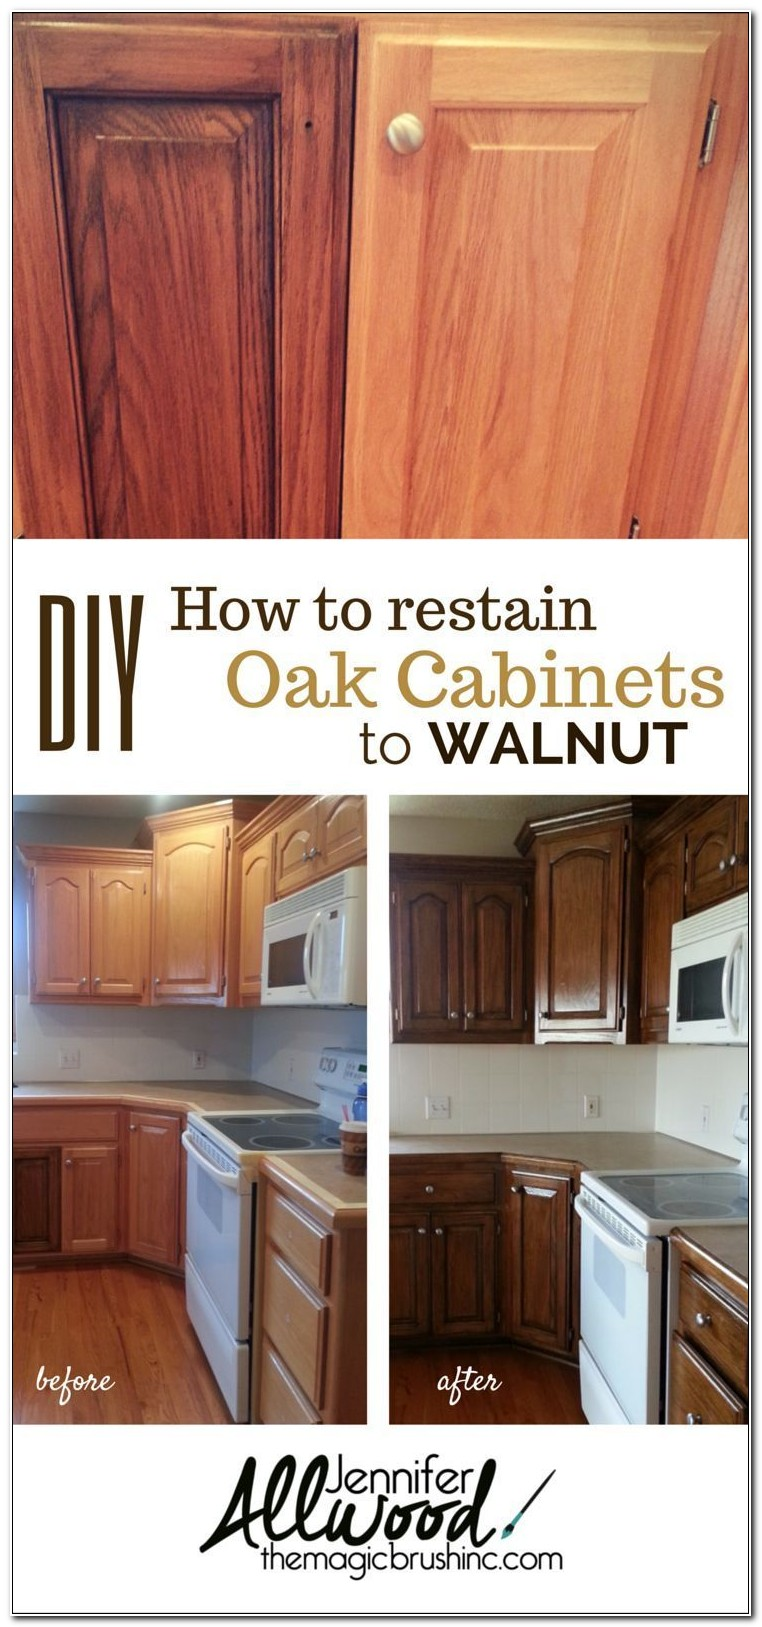 Refinish Oak Kitchen Cabinets Yourself